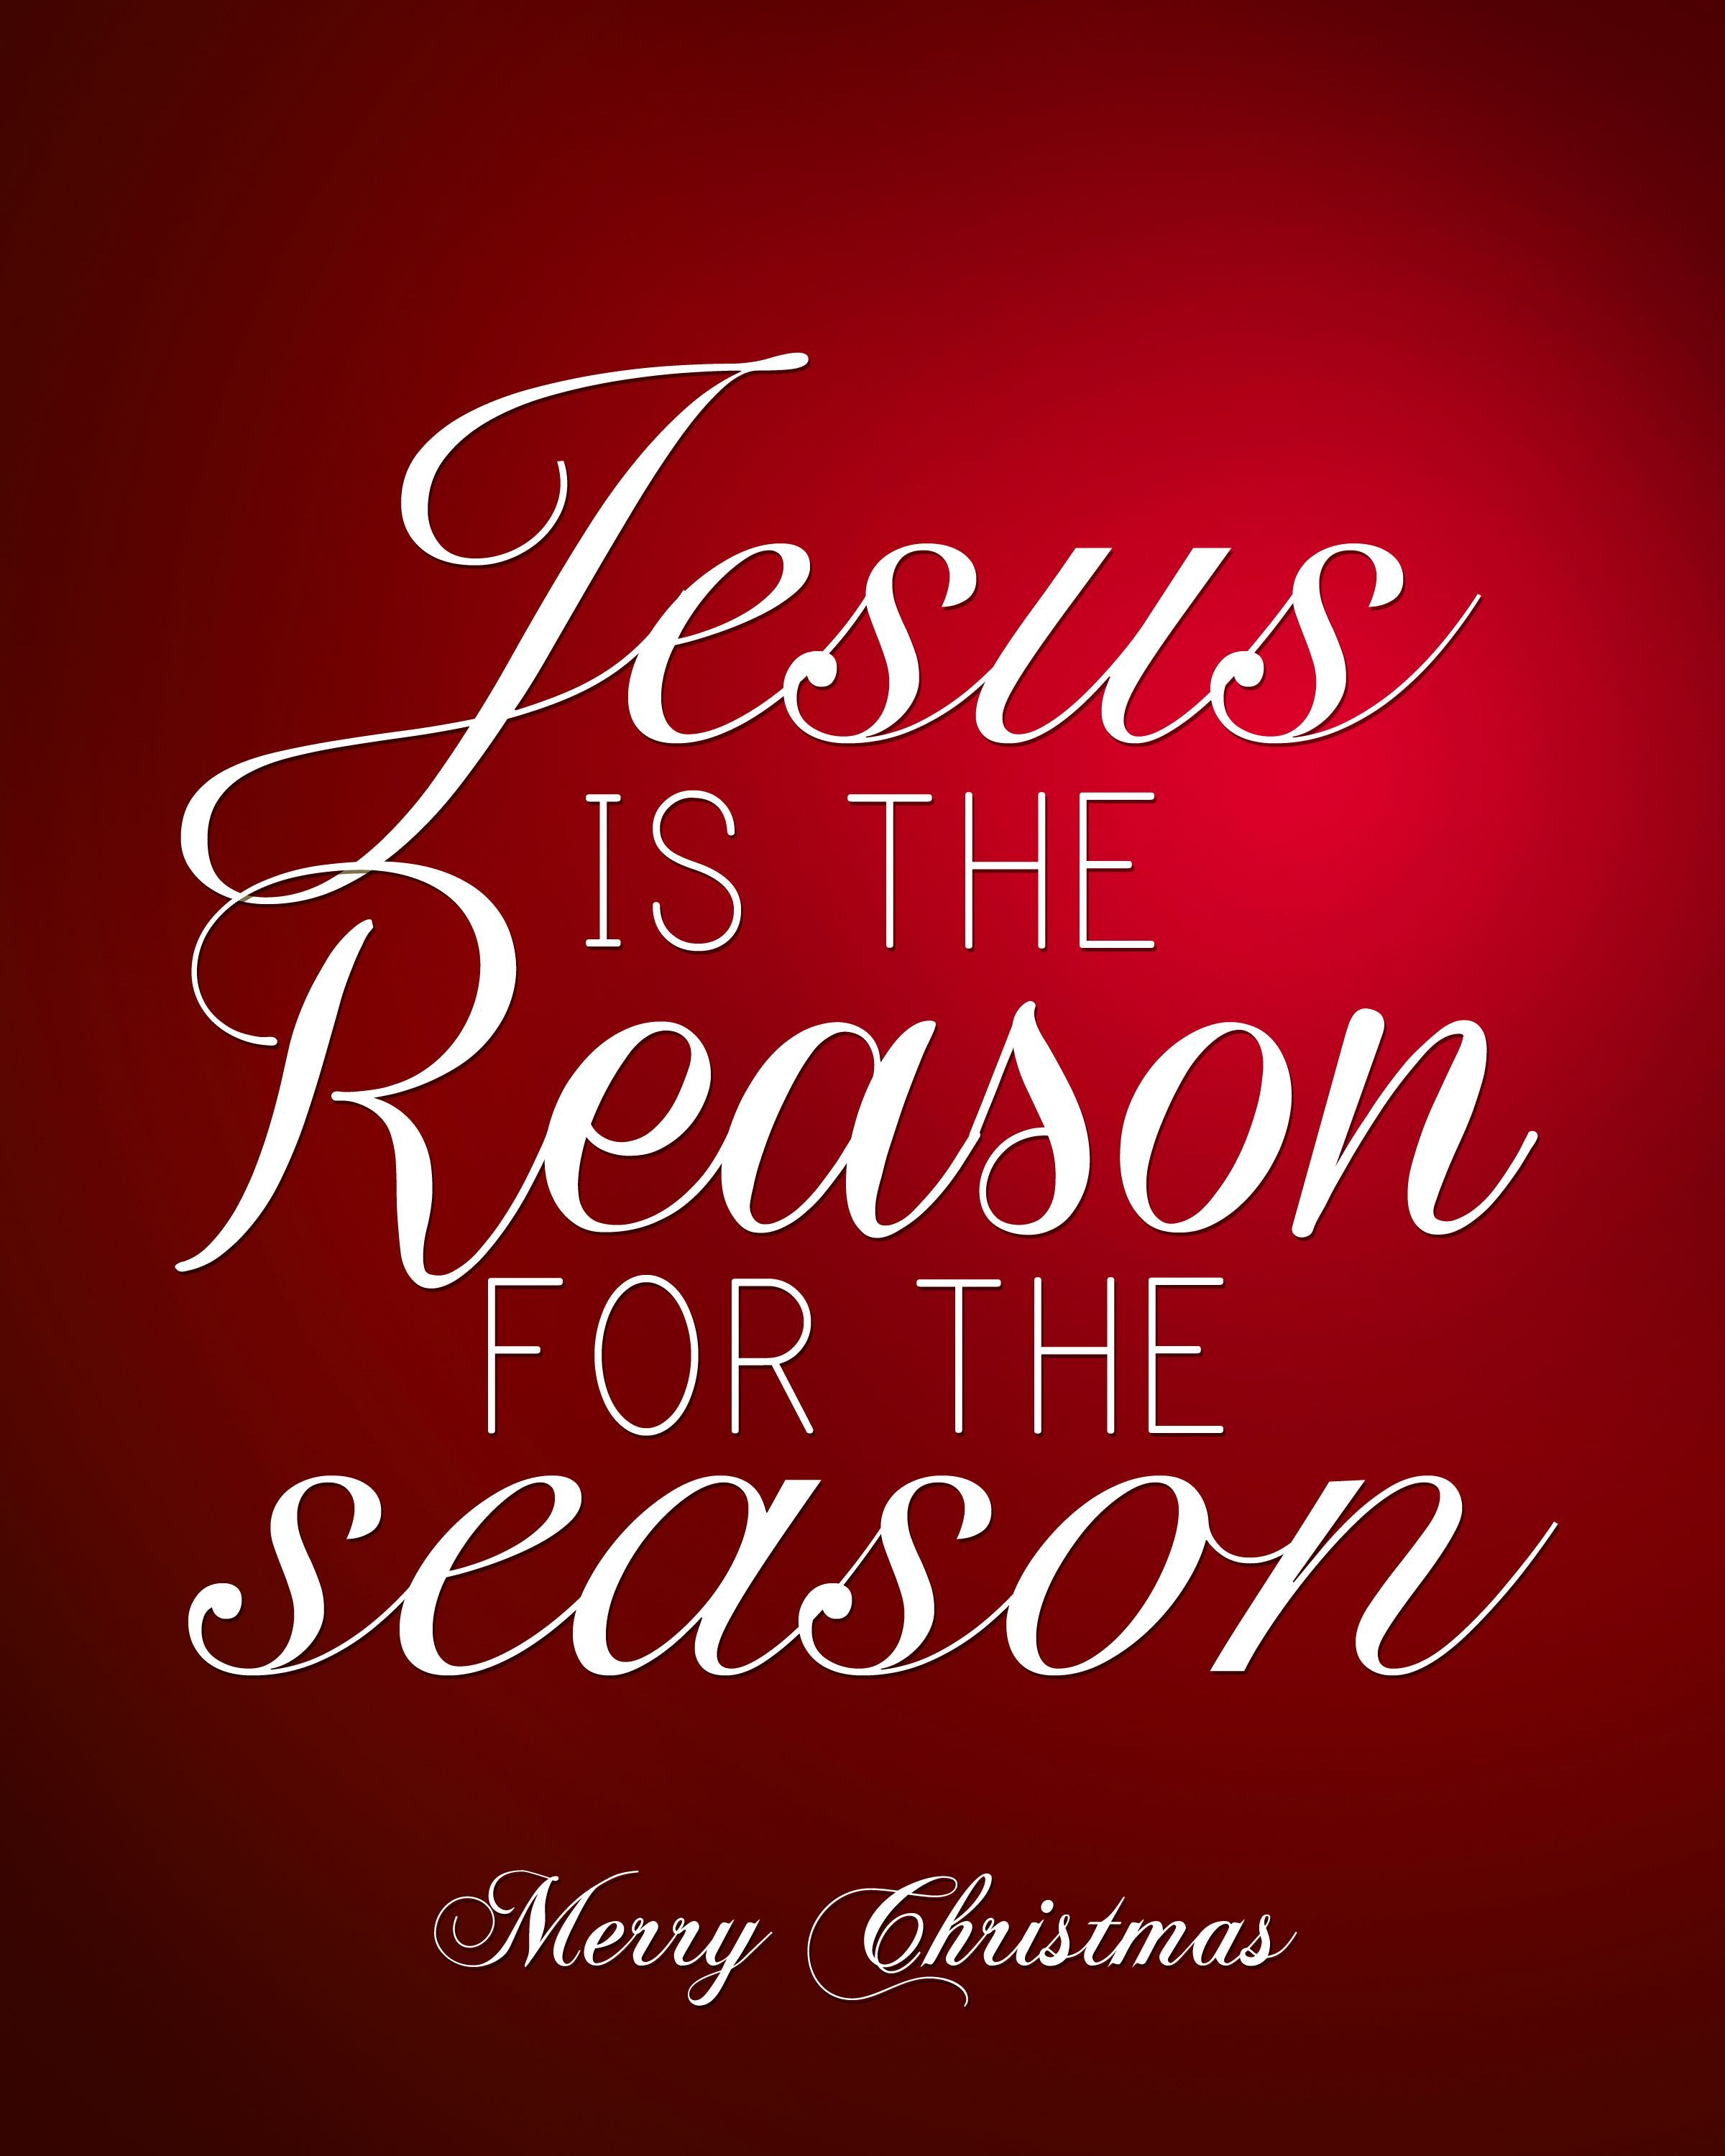 christmas quotes jesus jesus is the reason for the season free christmas printable christmasquotes jesus